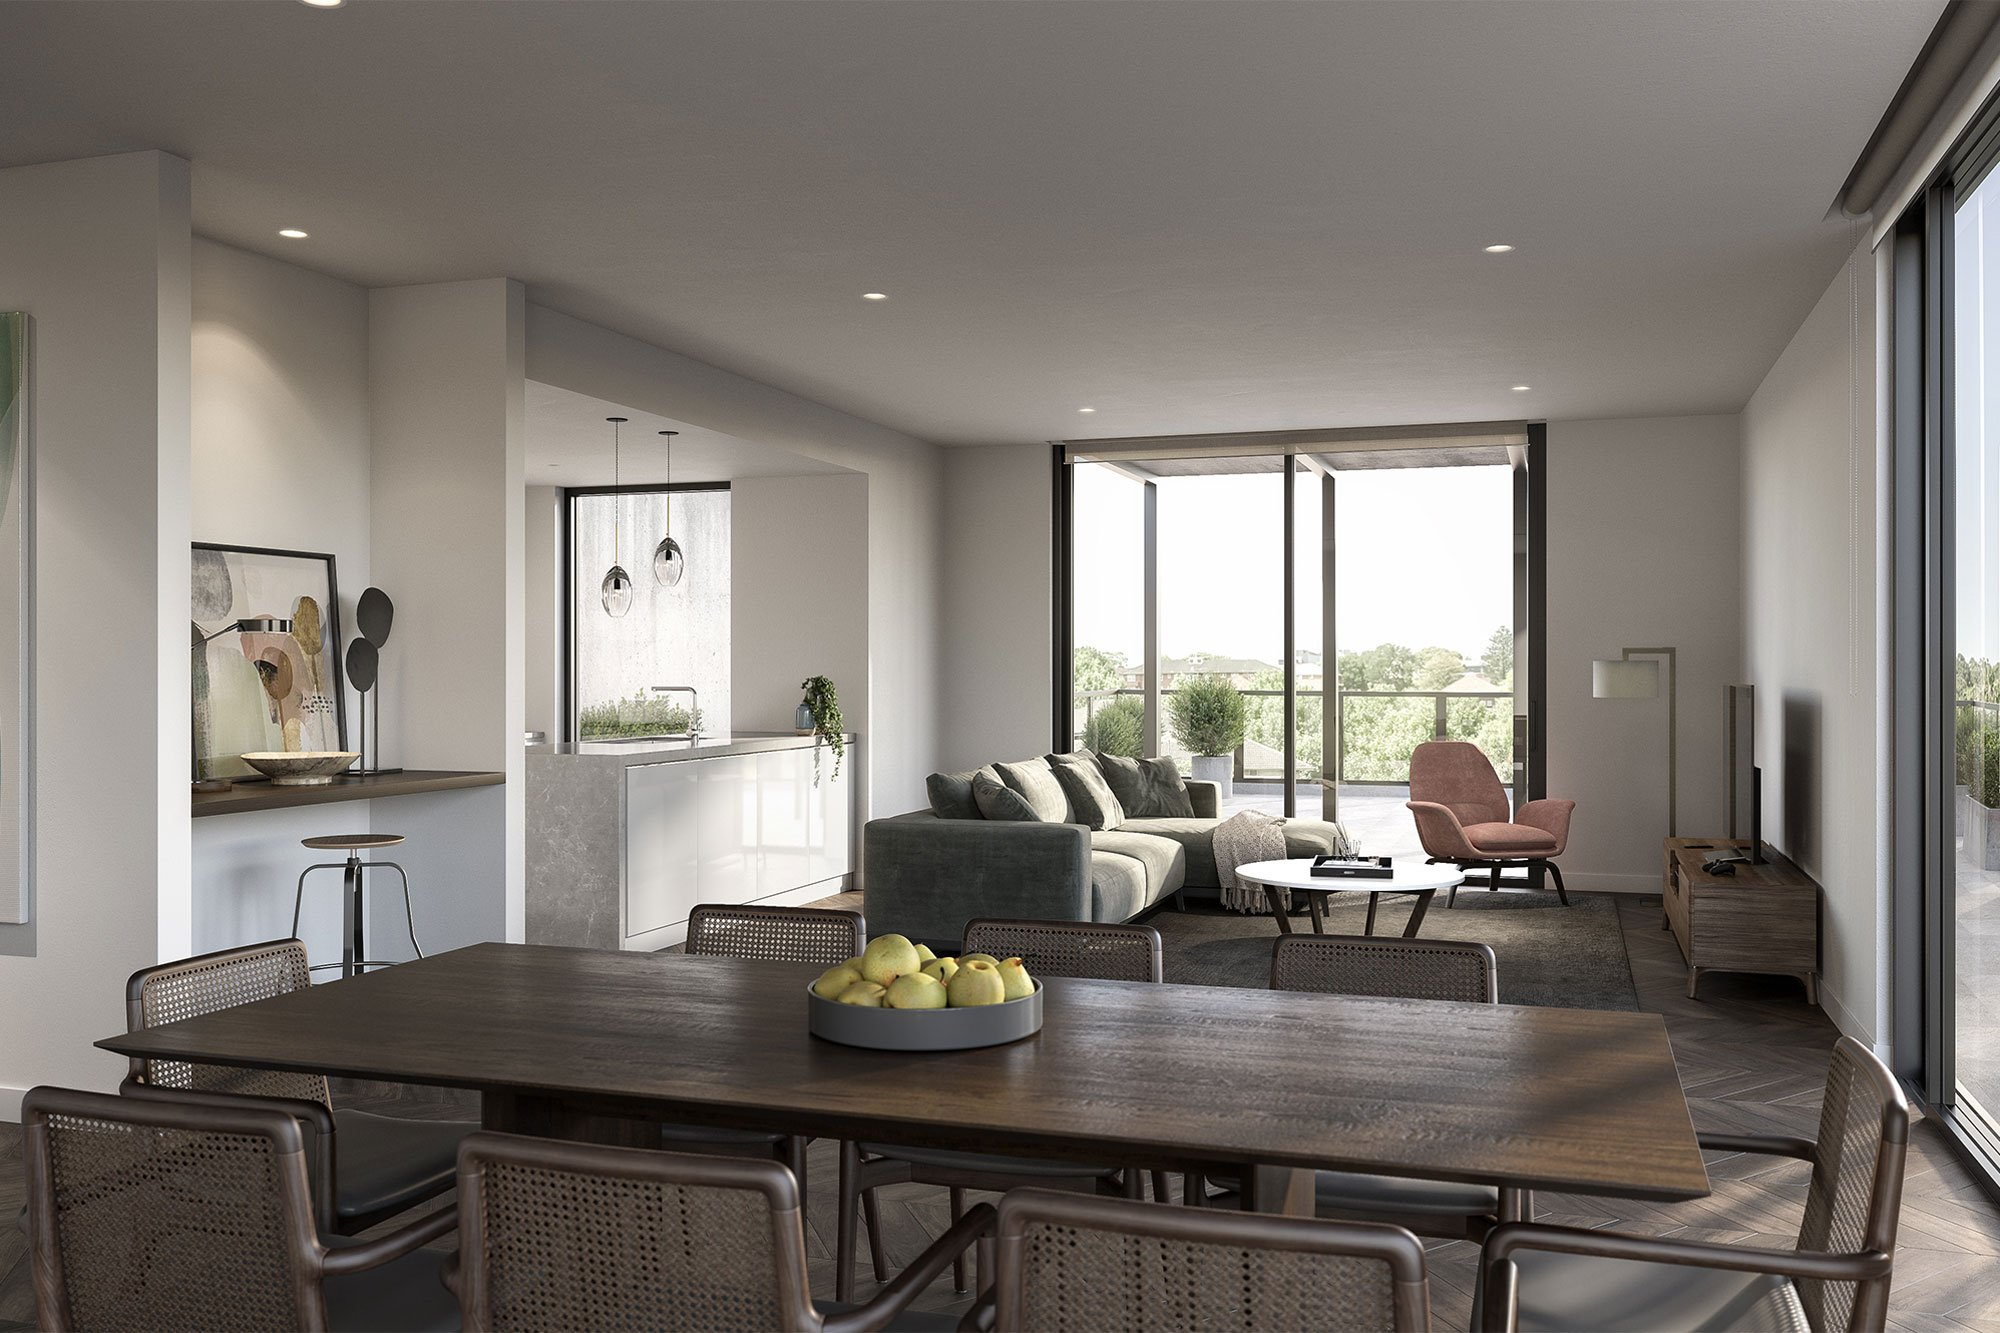 Apartment dining and lounge interior opening up to balcony at Strathalan Macleod.